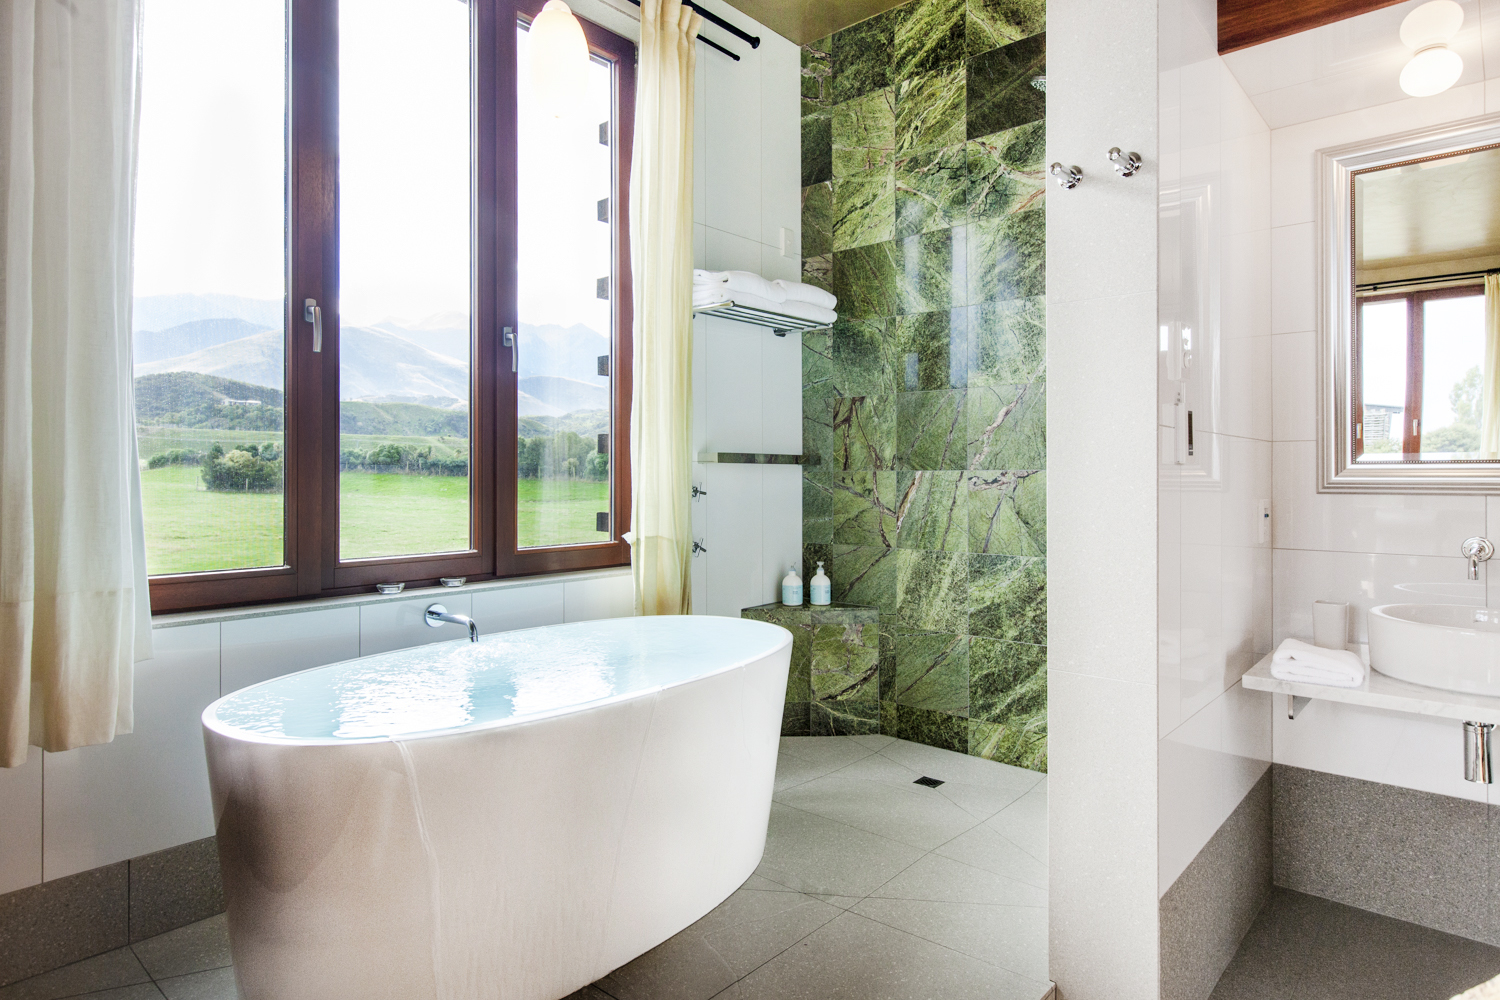 Relaxation is found in a deep, hot, soaking tub with a great view.